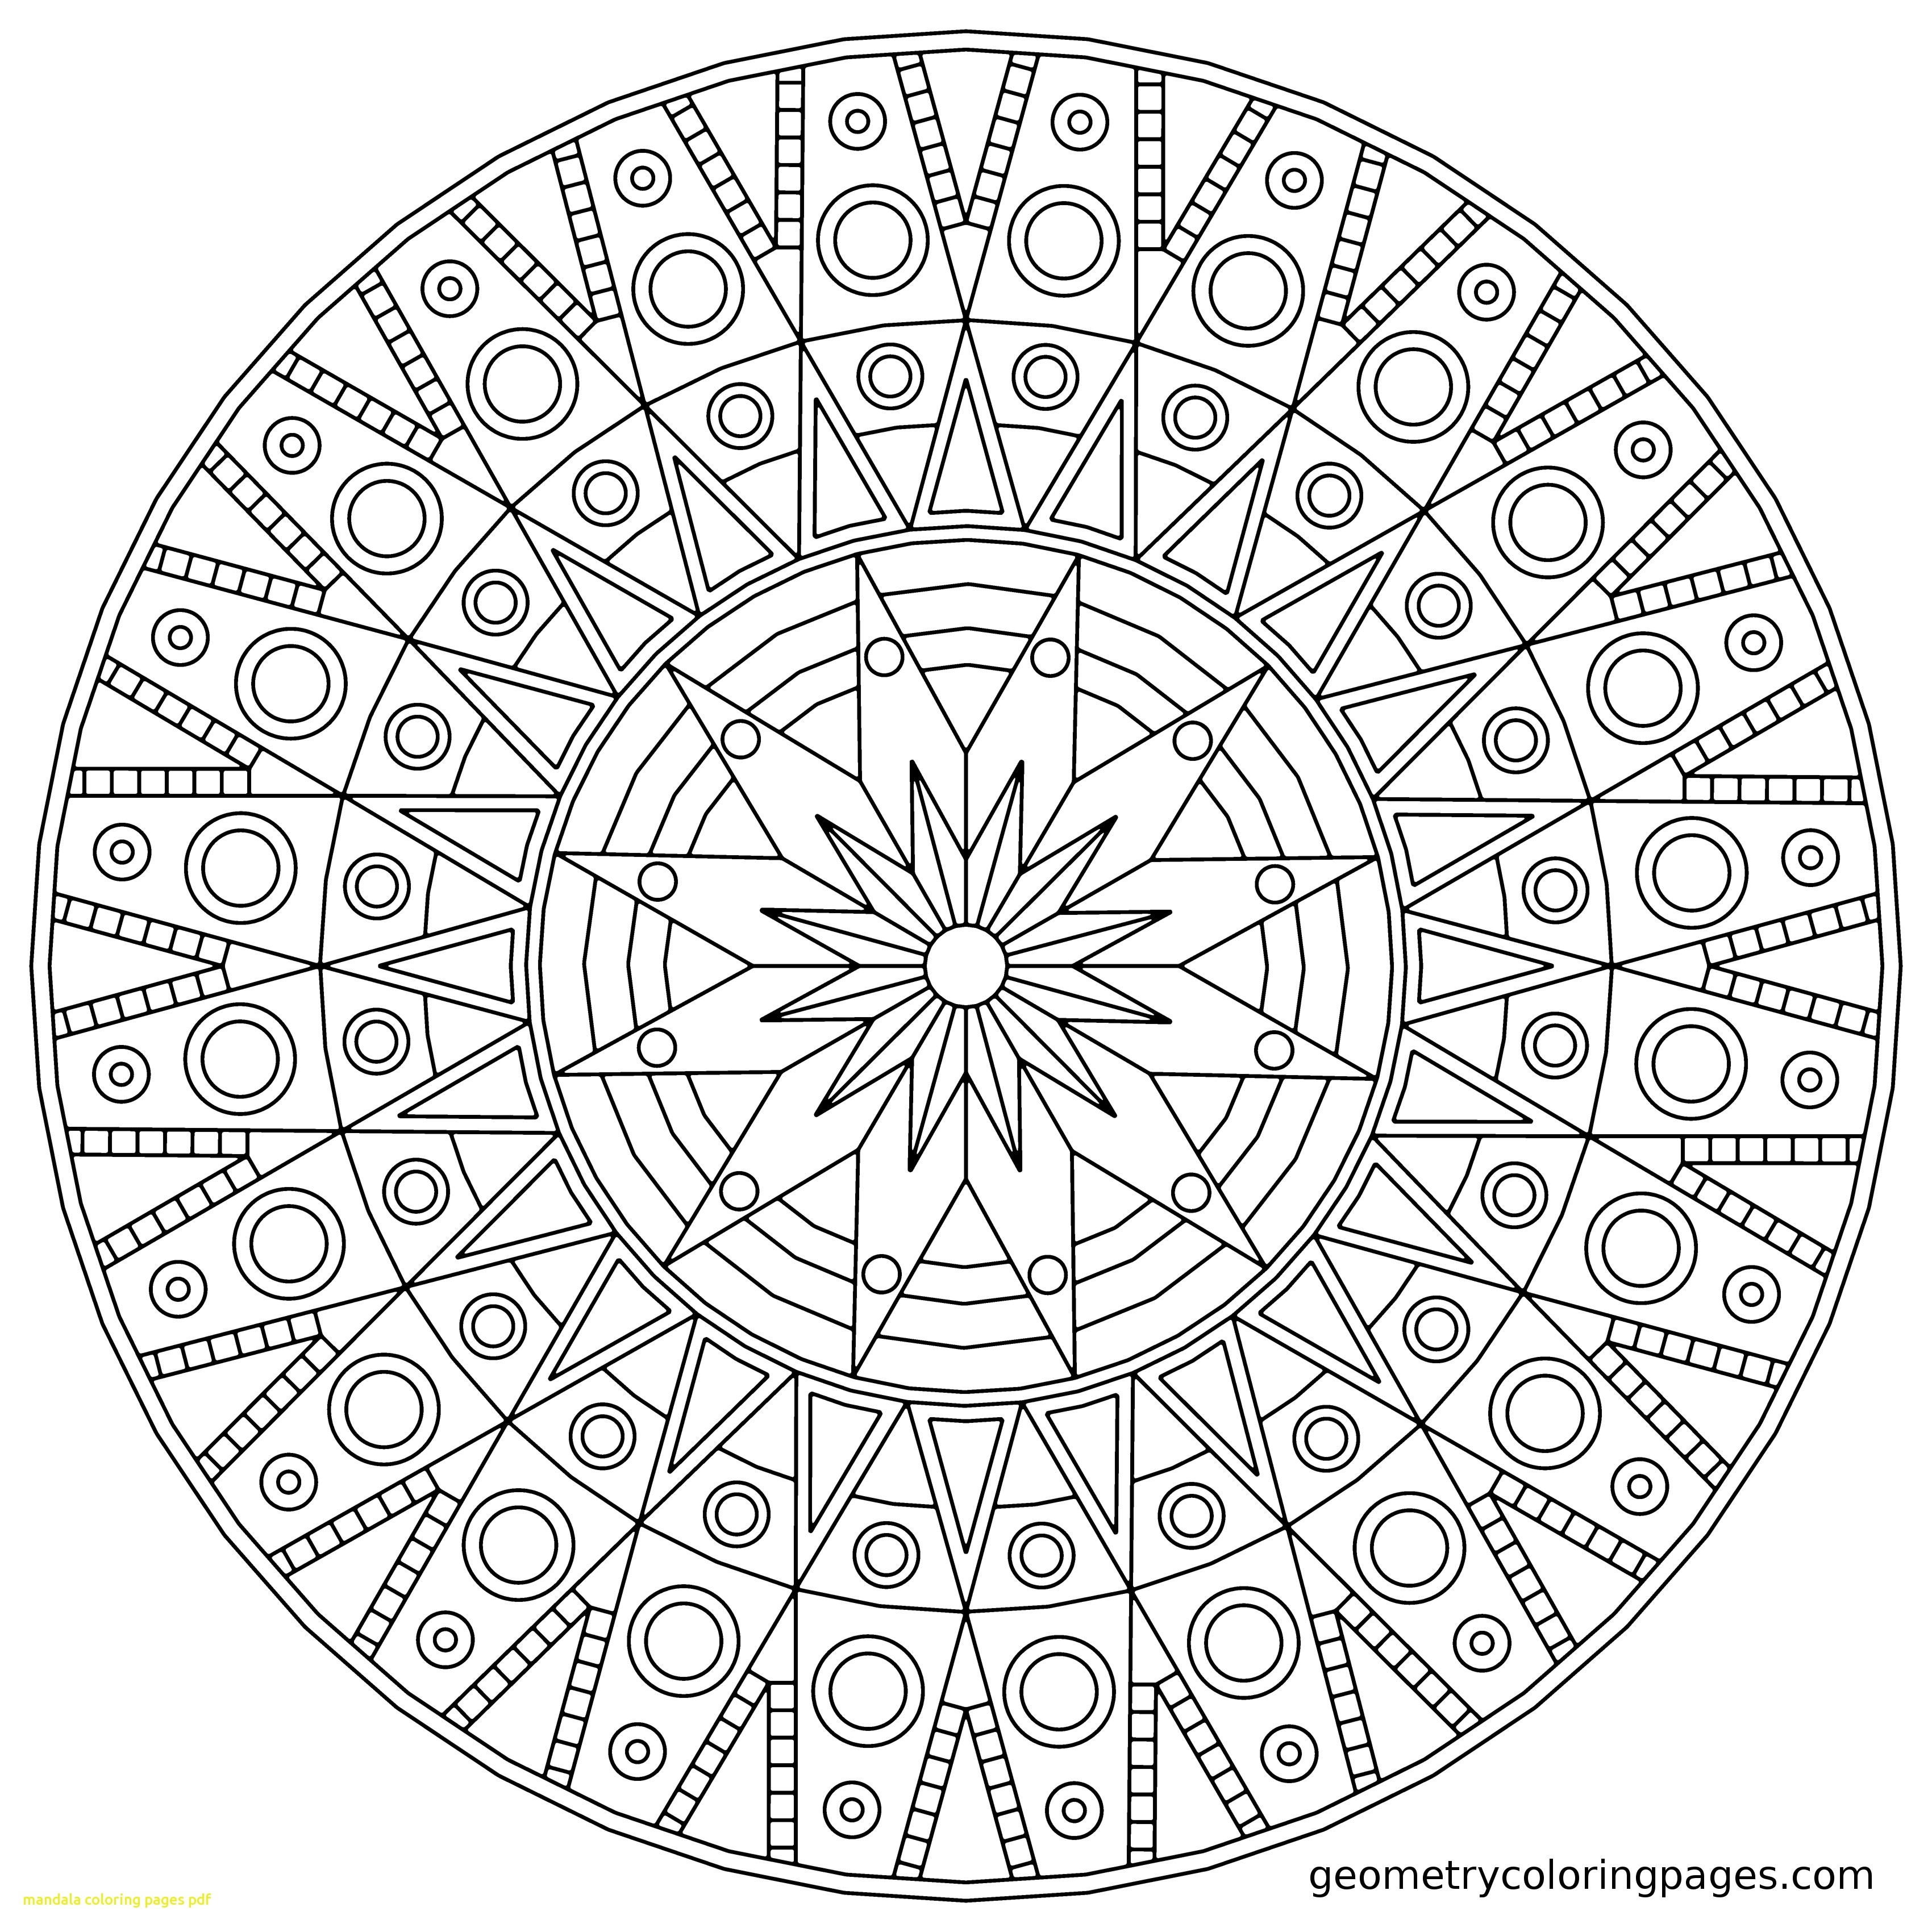 3400x3400 Geometric Mandalas Coloring Pages Collection Coloring For Kids